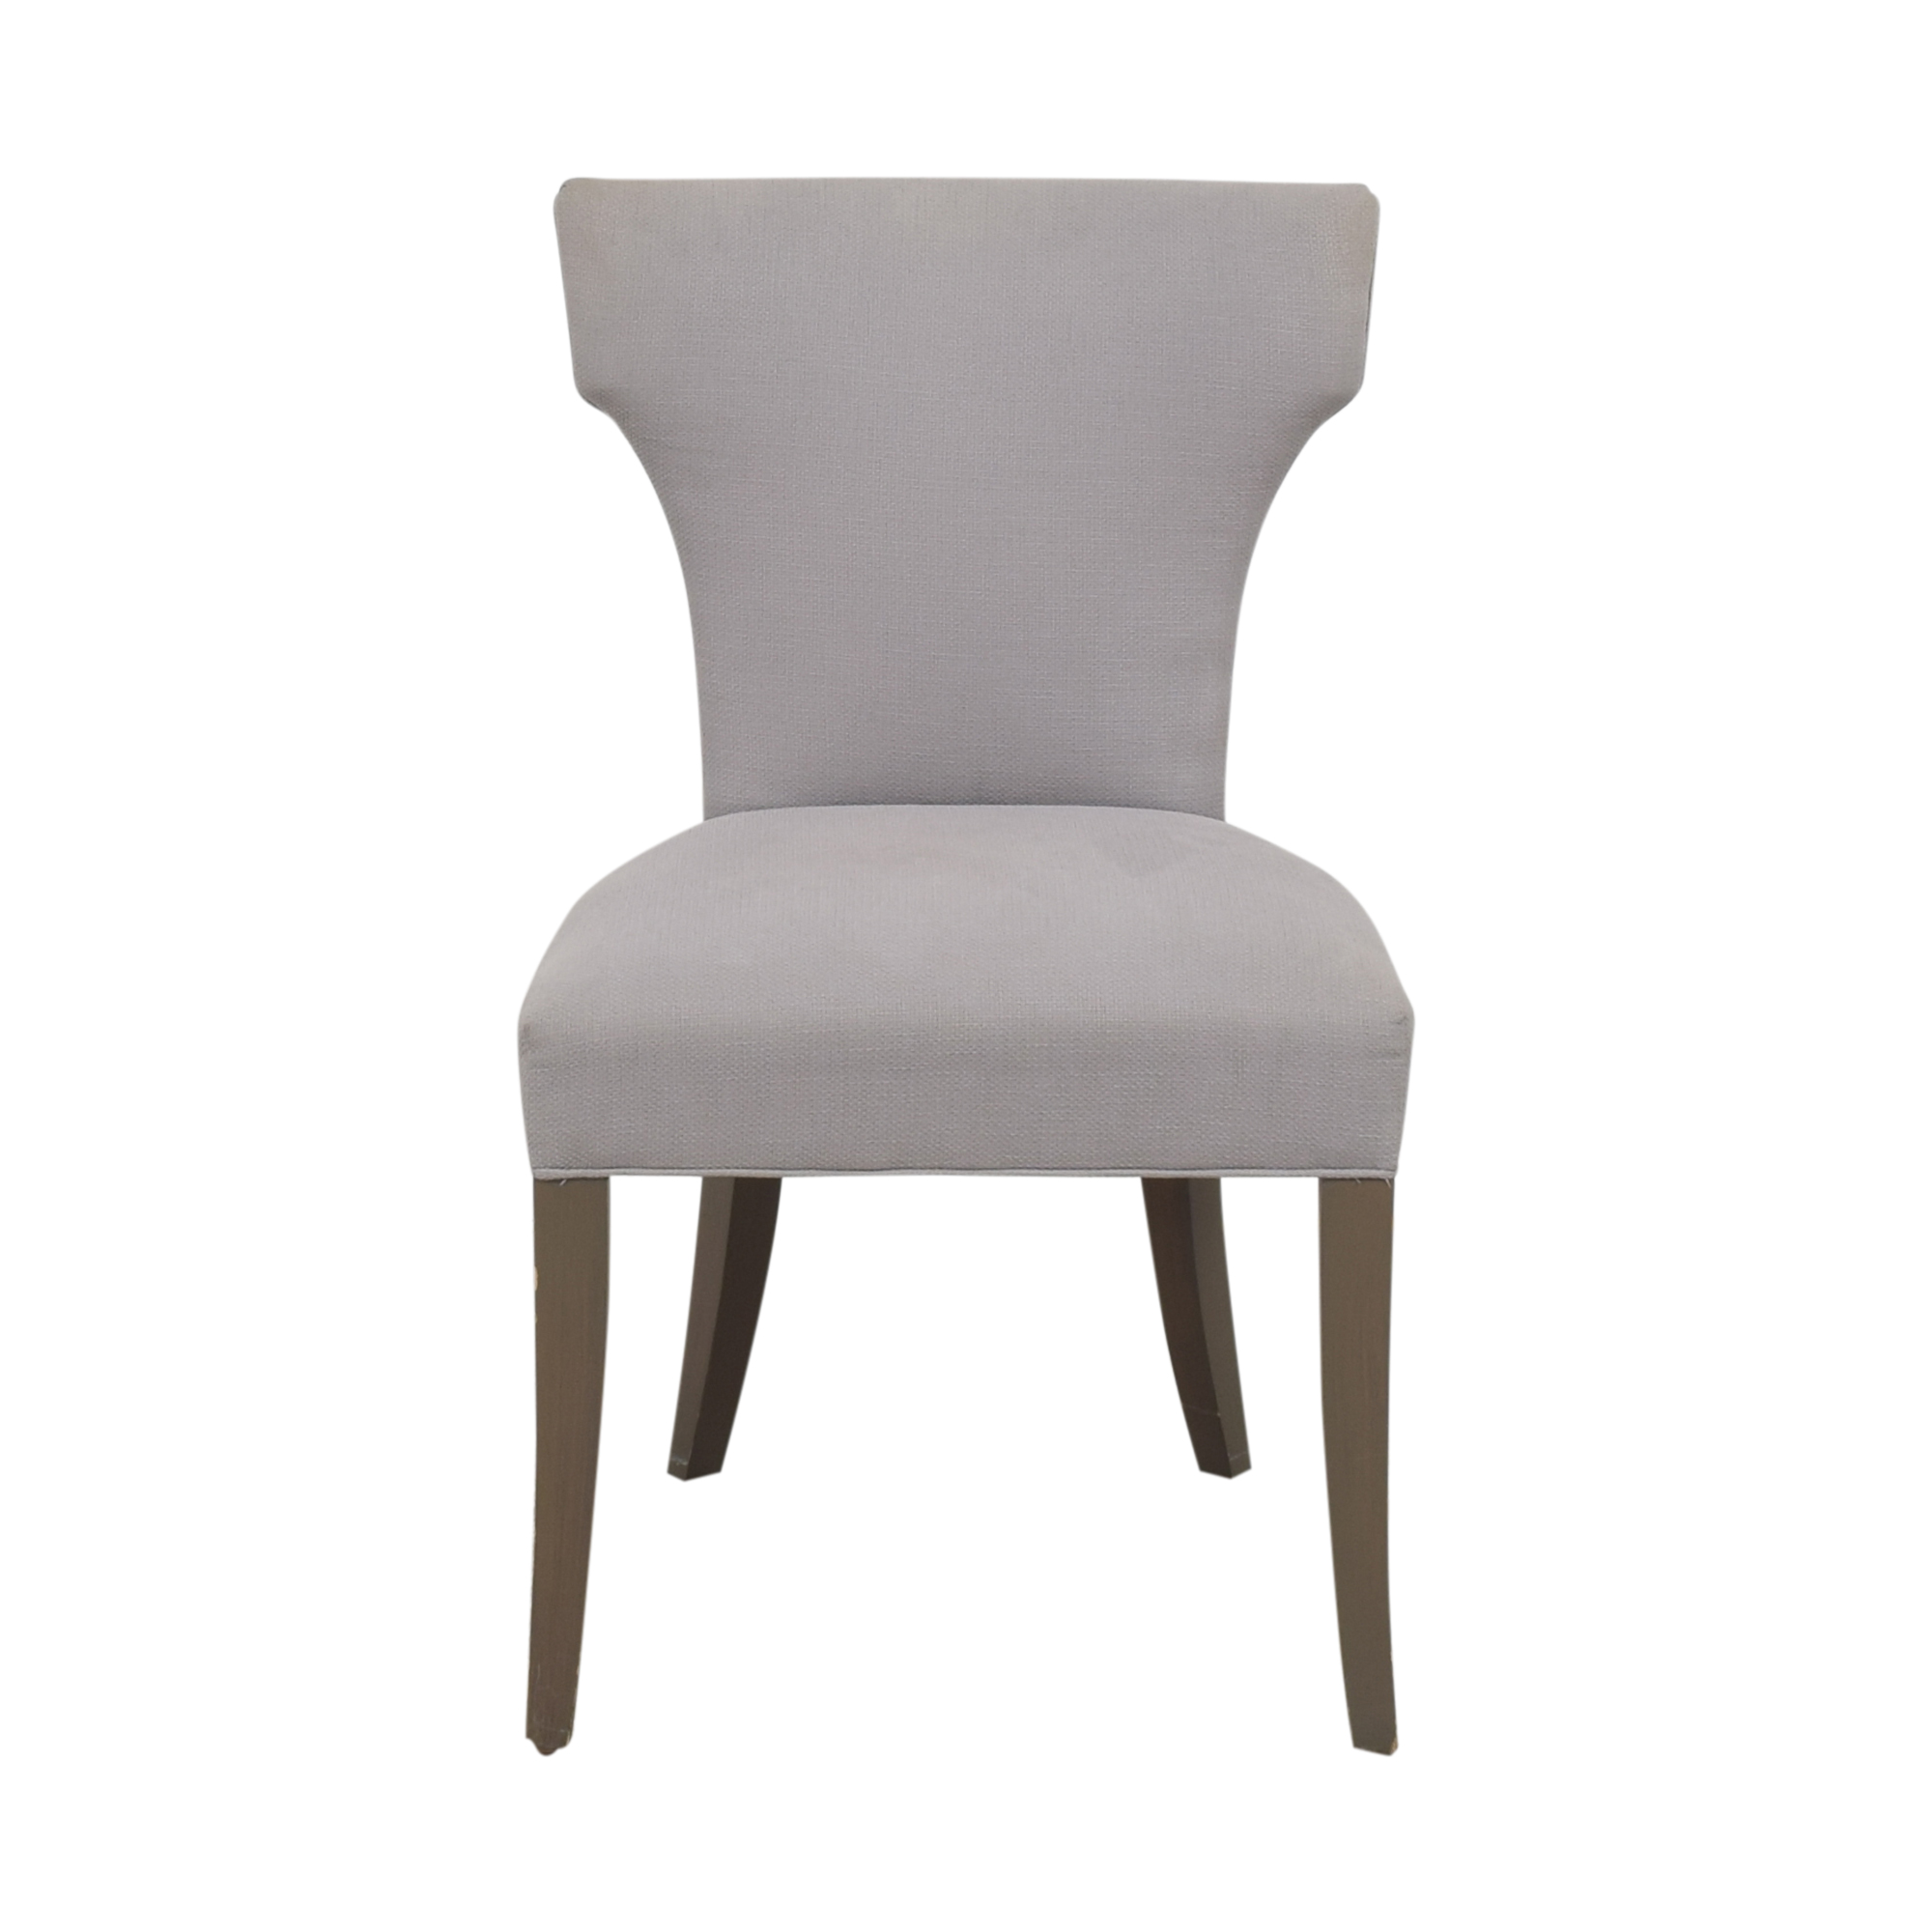 Crate & Barrel Crate & Barrel Sasha Upholstered Dining Side Chair used